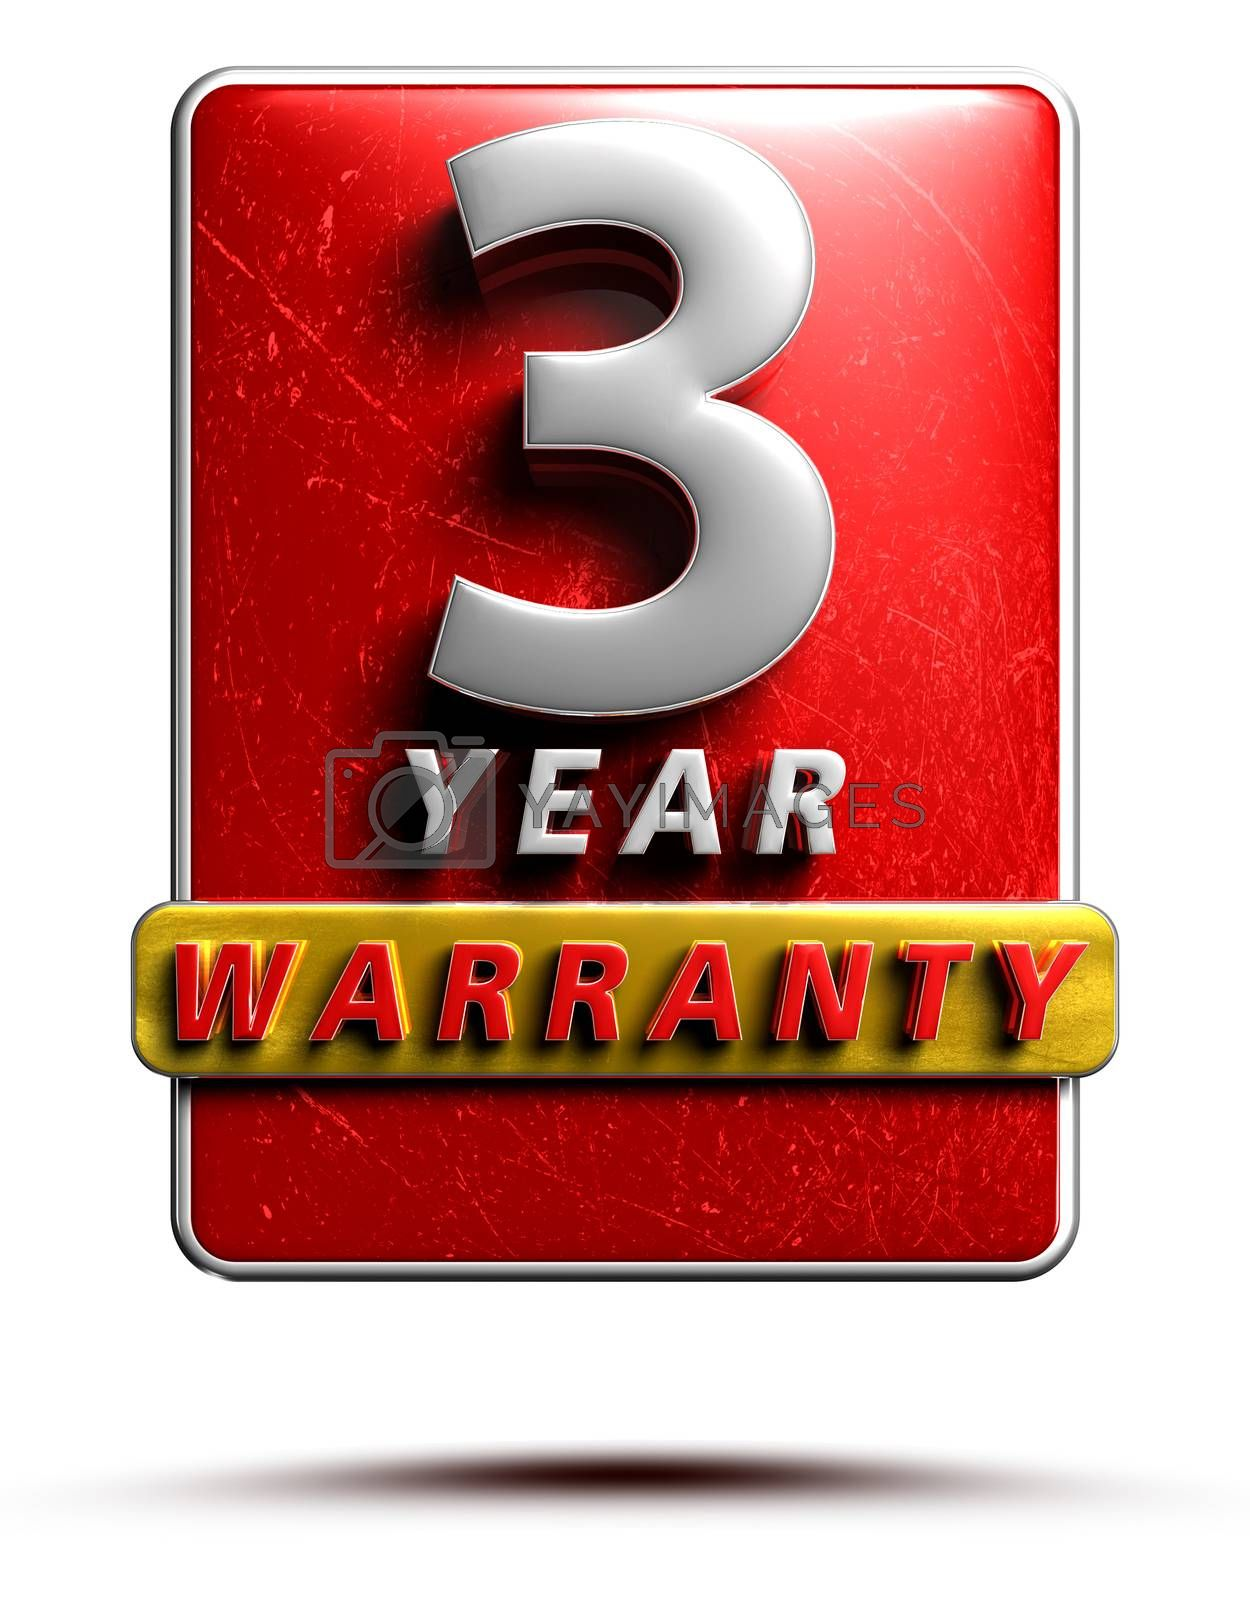 Warranty label 3D illustration 3 years Red Color Numbers in stainless steel Isolated on a white background. (With Clipping Path).